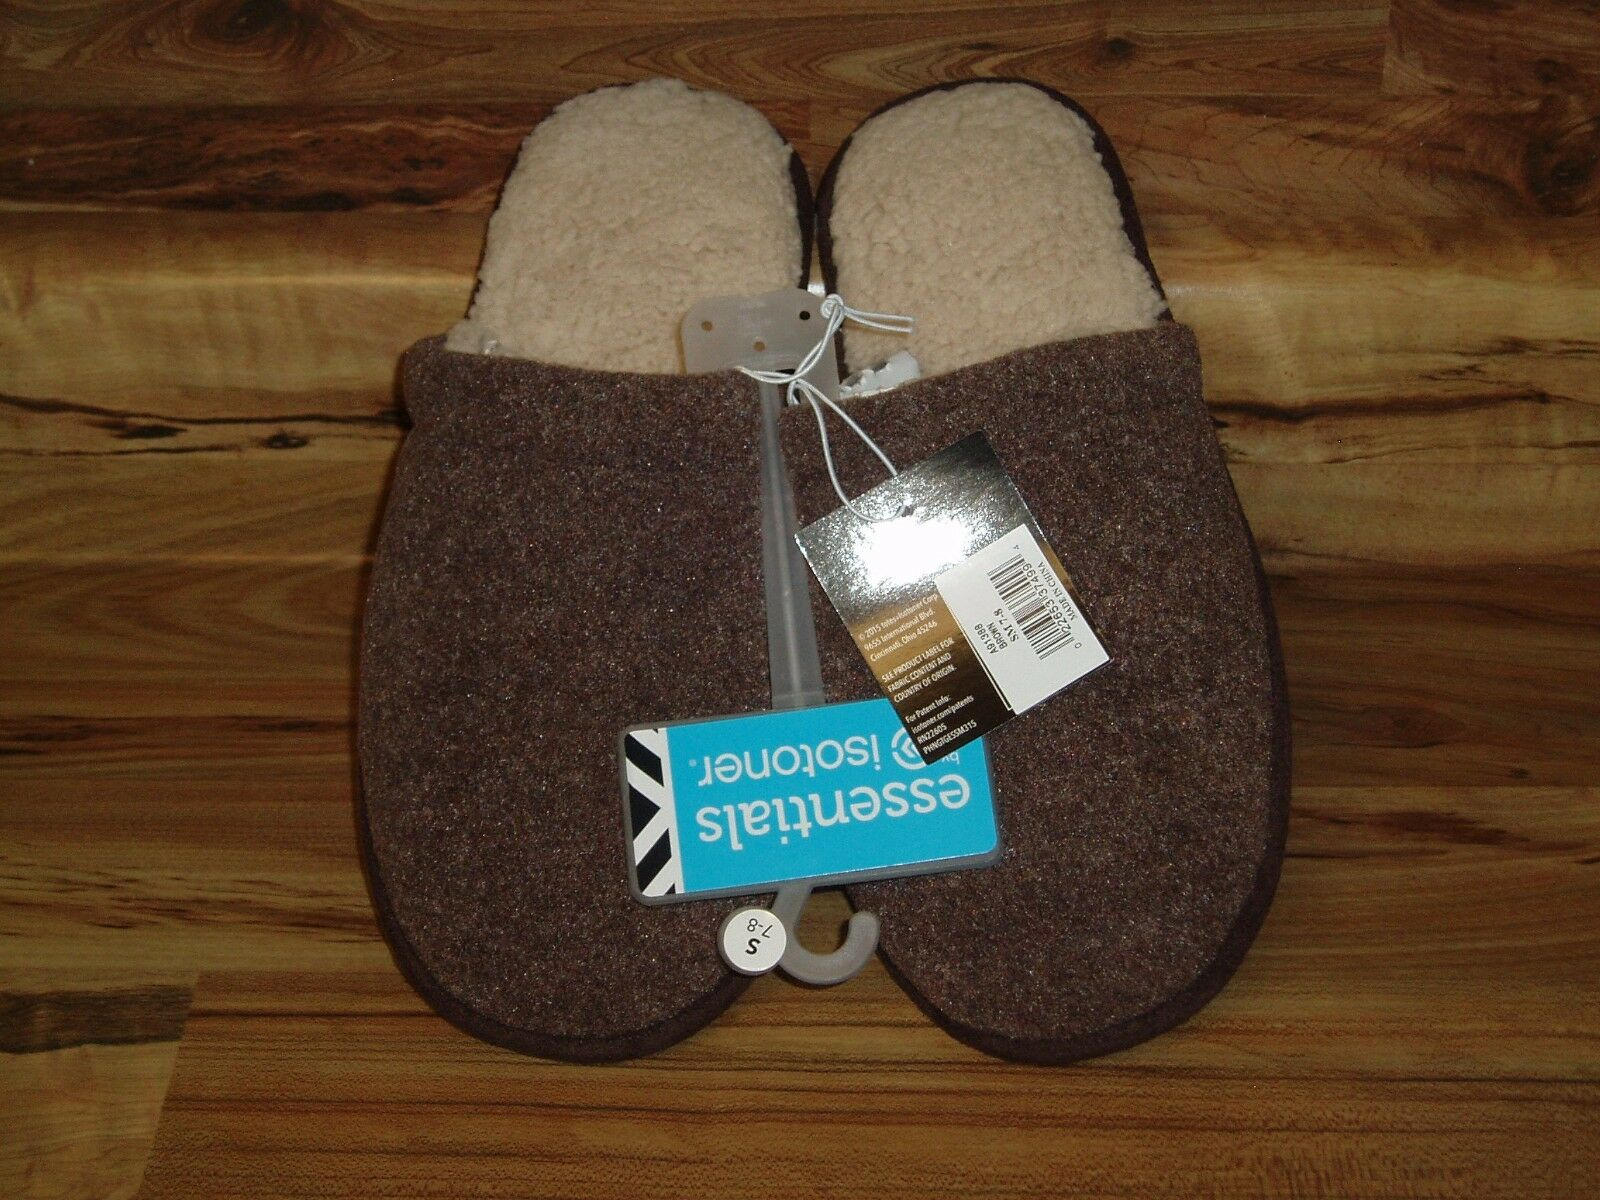 Essentials by Isotoner Slippers Men's - Brown - US Men's Slippers Small 7-8/Women 9-10 - NEW fdc2b6